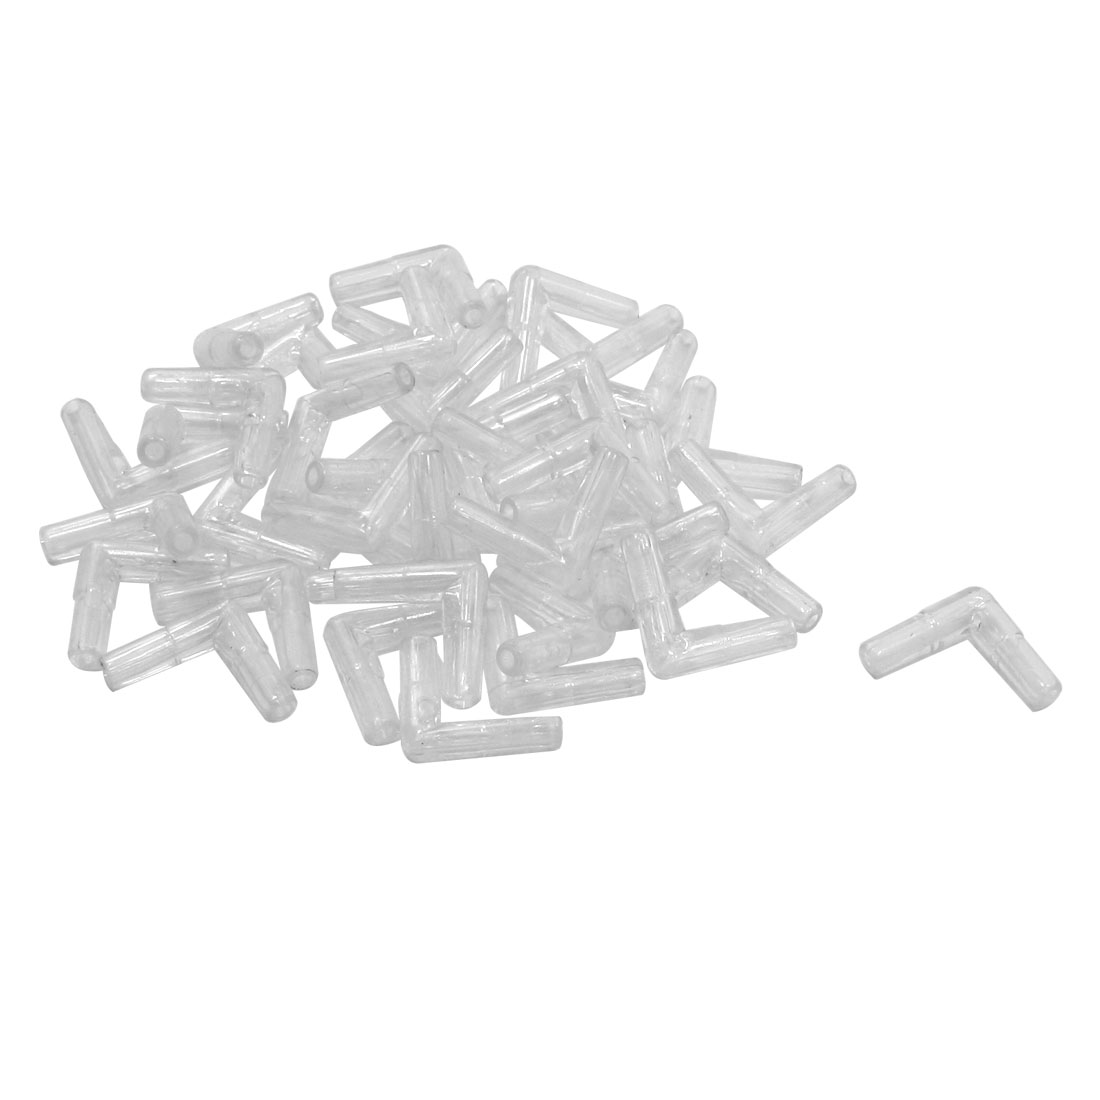 40 Pcs 2 Way L Shape Pump Air Tubing Line Connector for Fish Tank